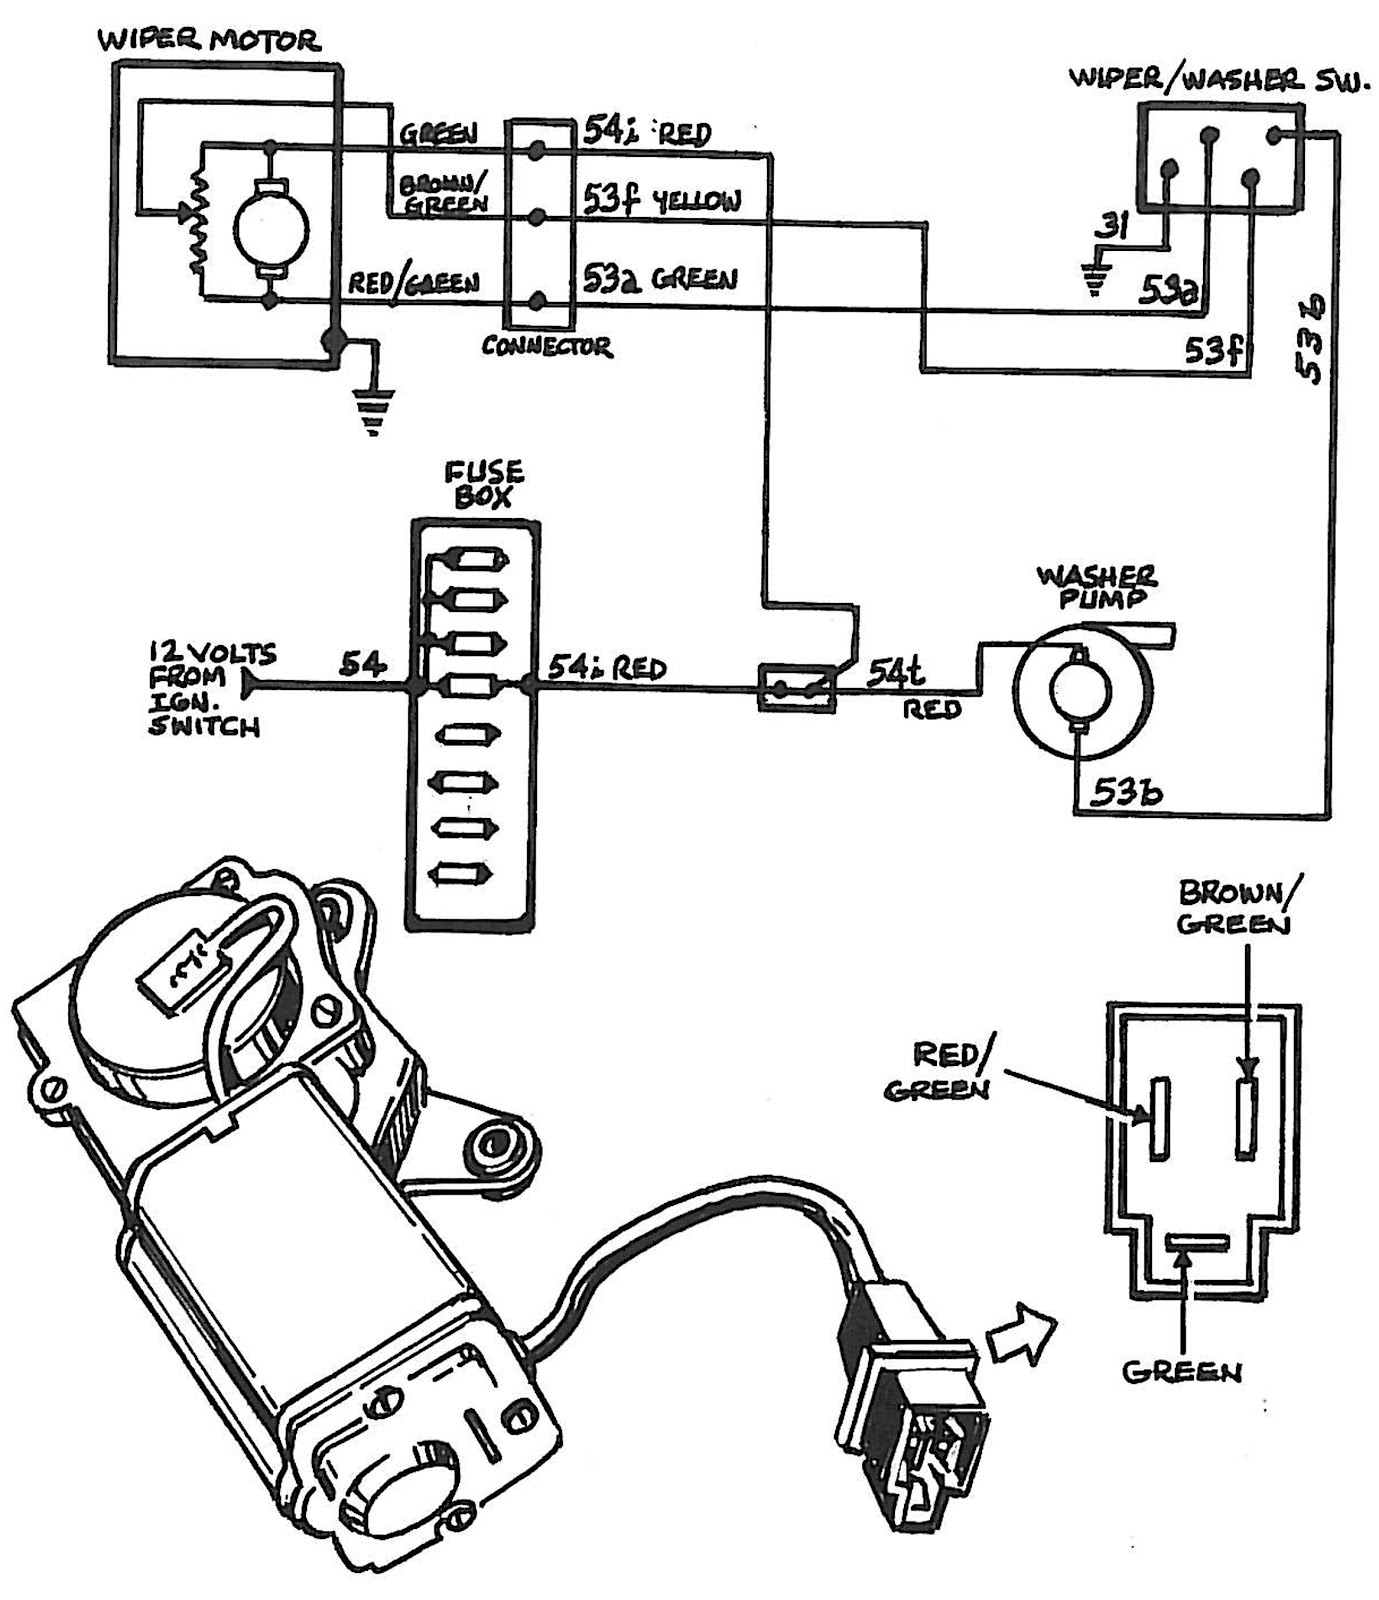 4l60e Transmission Wiring Diagram Sevimliler together with Chevrolet Blazer Wiring Diagram 1999 moreover Id Part 78138 together with Chevy Equinox Suspension additionally 2002 Chevy Trailblazer Fuse Box Diagram. on 2003 chevy trailblazer rear fuse box diagram